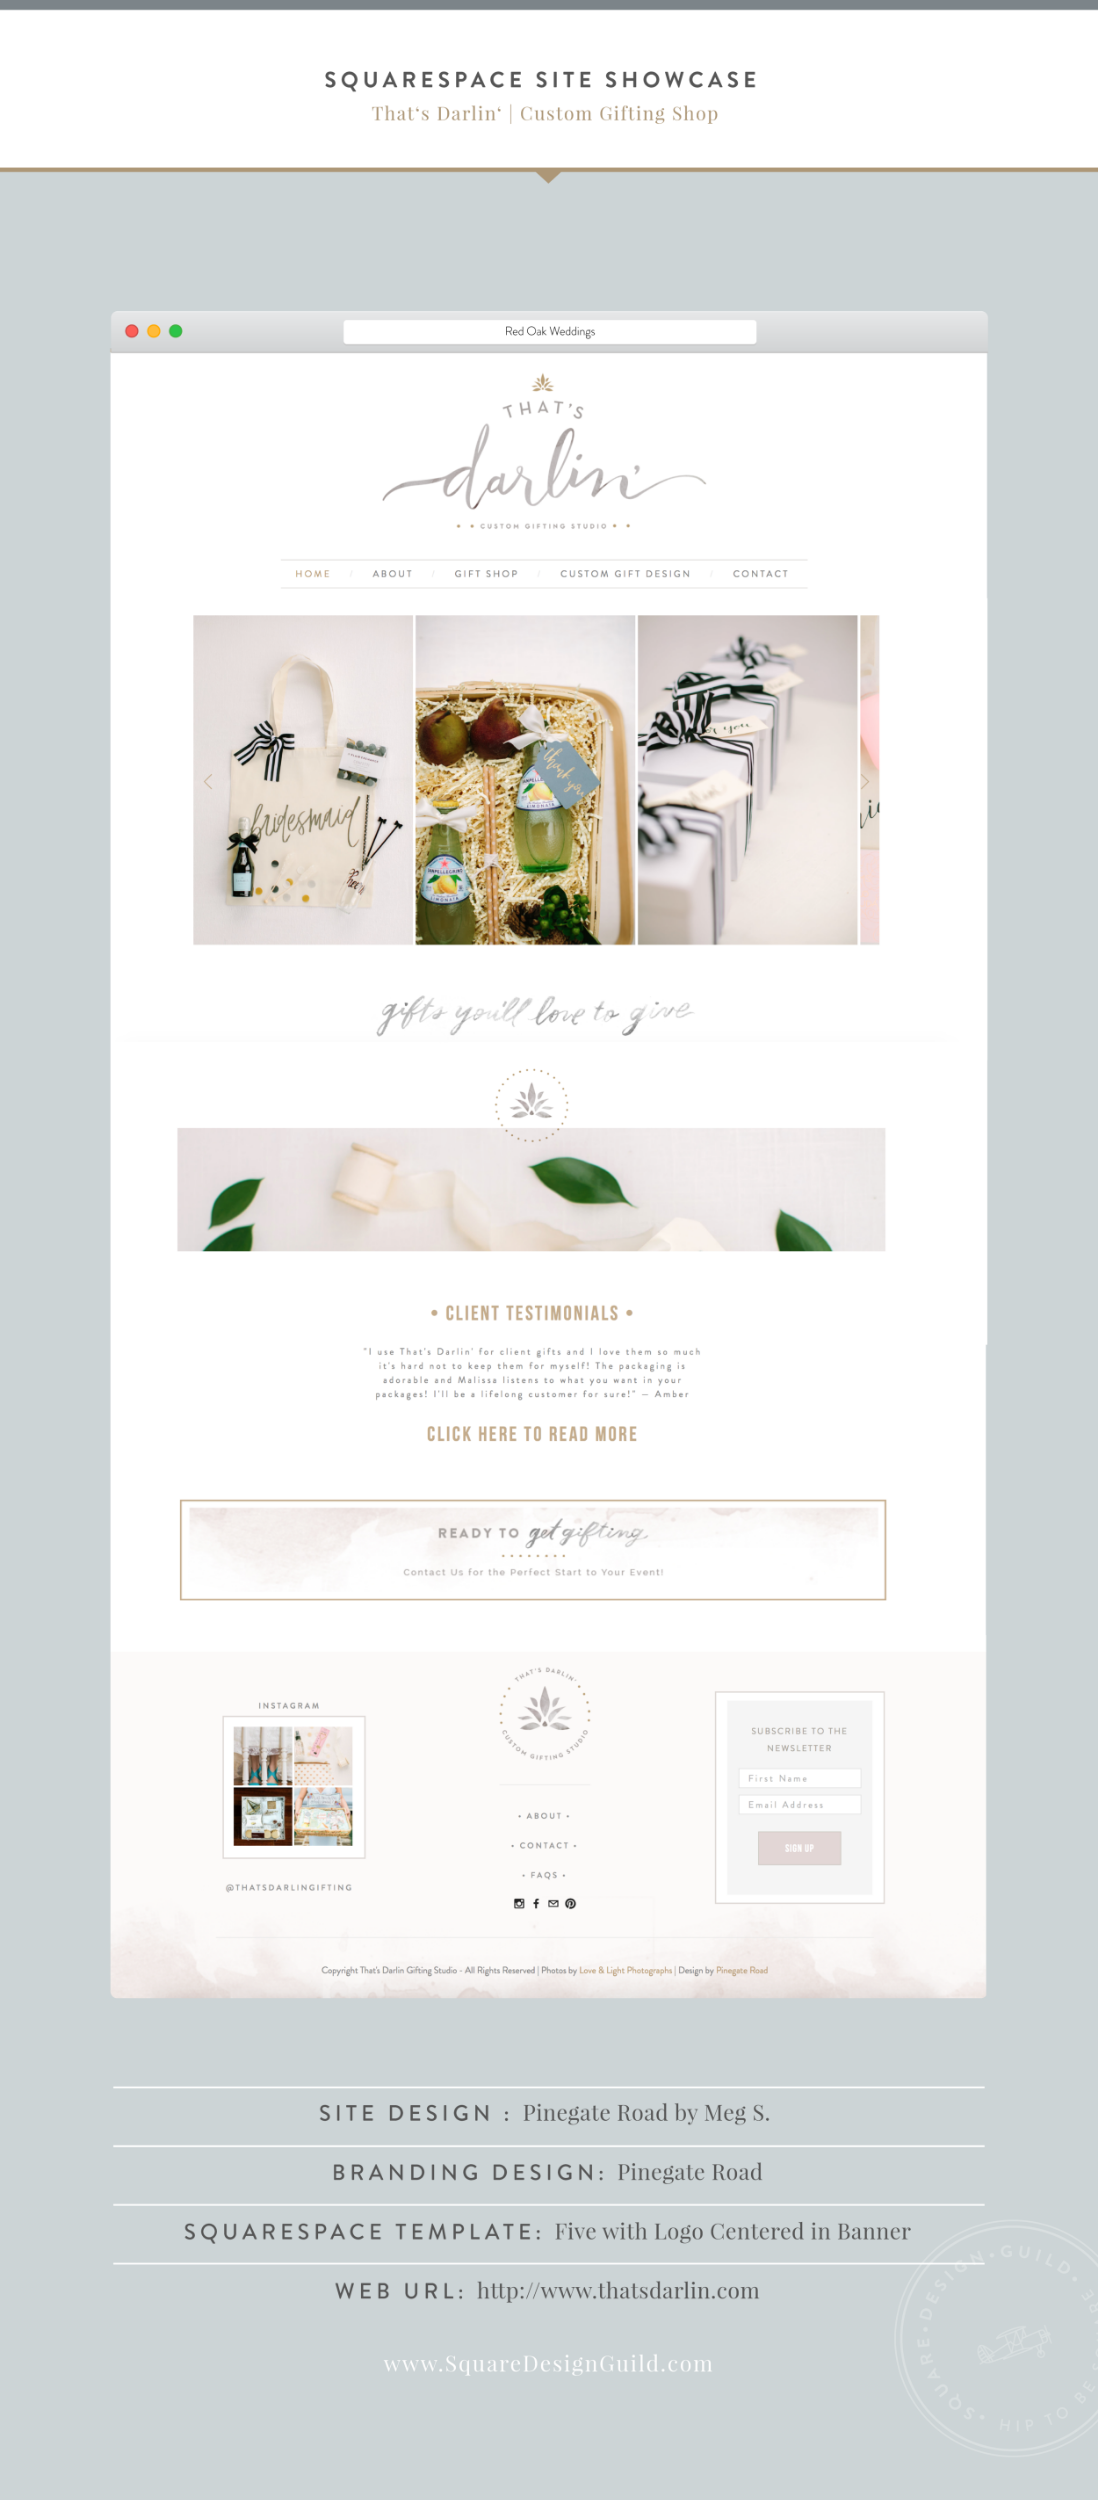 Site Showcase That S Darlin By Pinegate Road Squarespace Website Design Beautiful Website Design Web Design Tips